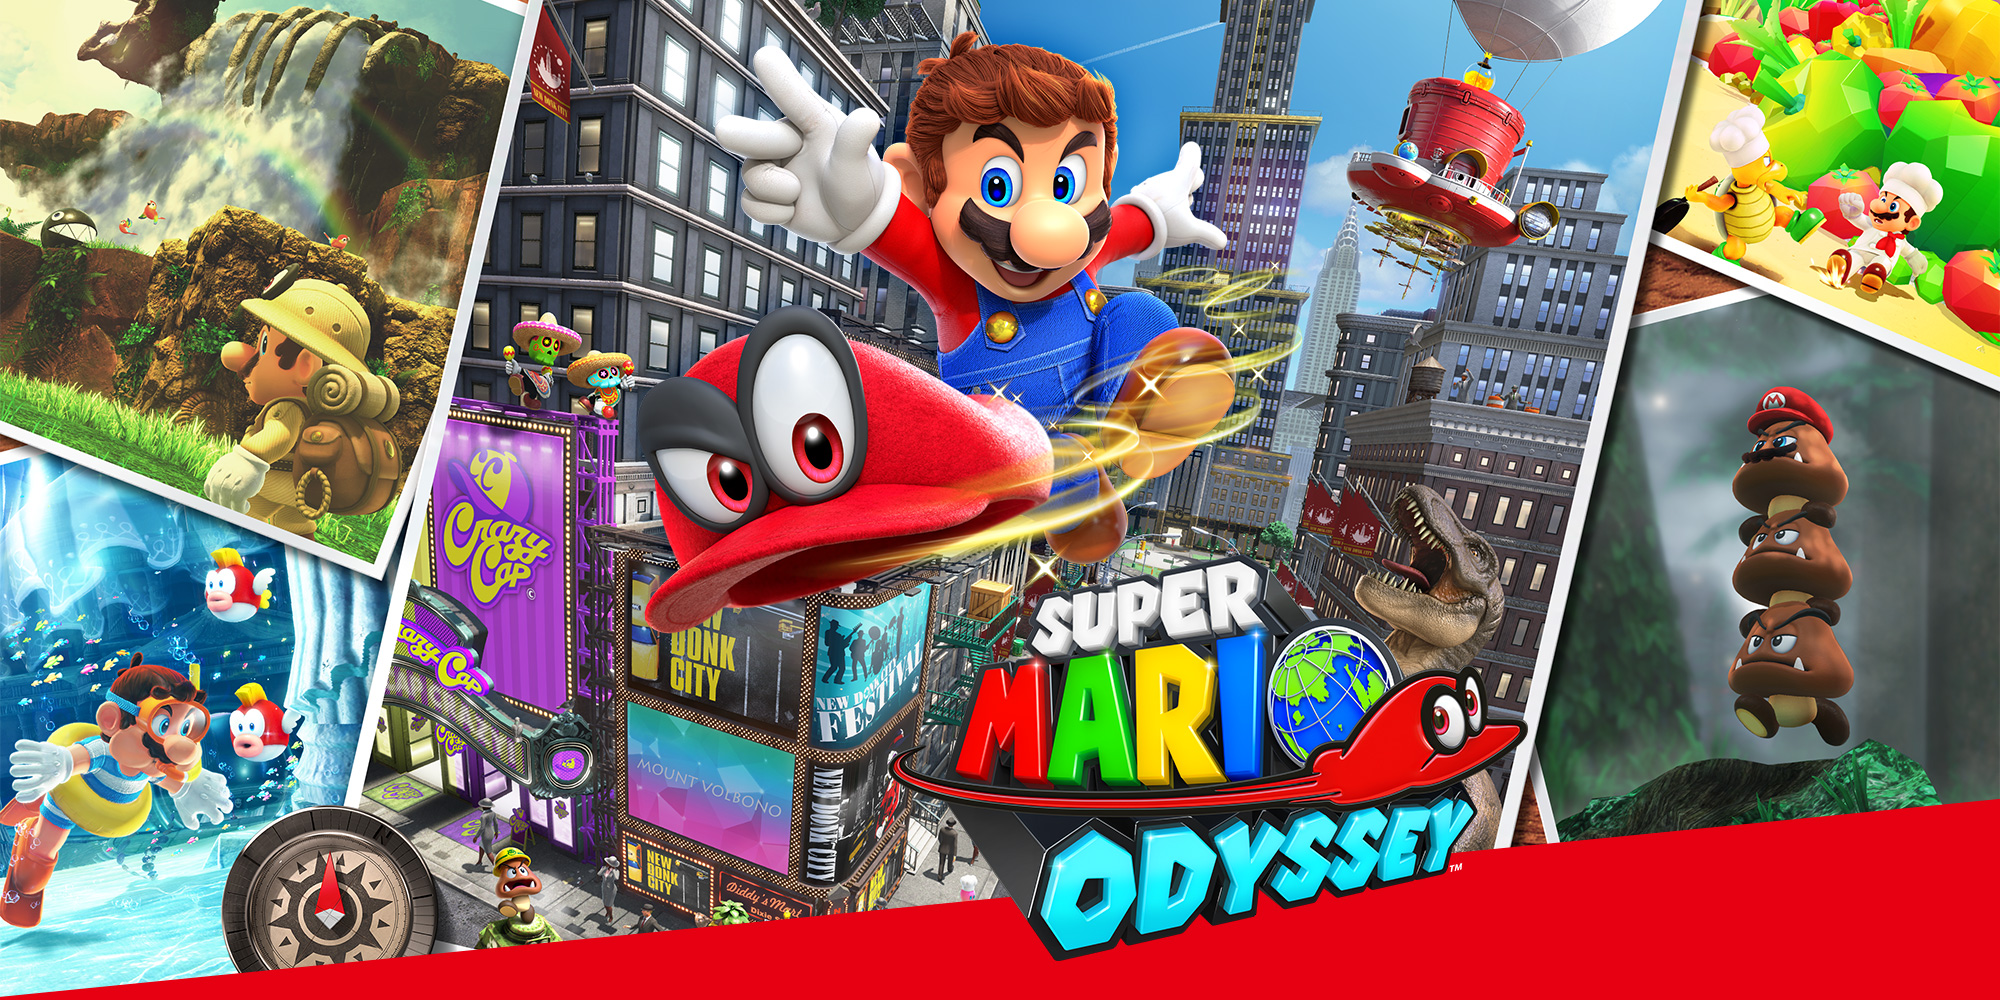 The Art of Super Mario Odyssey book featuring Bowsette comes to the US this year